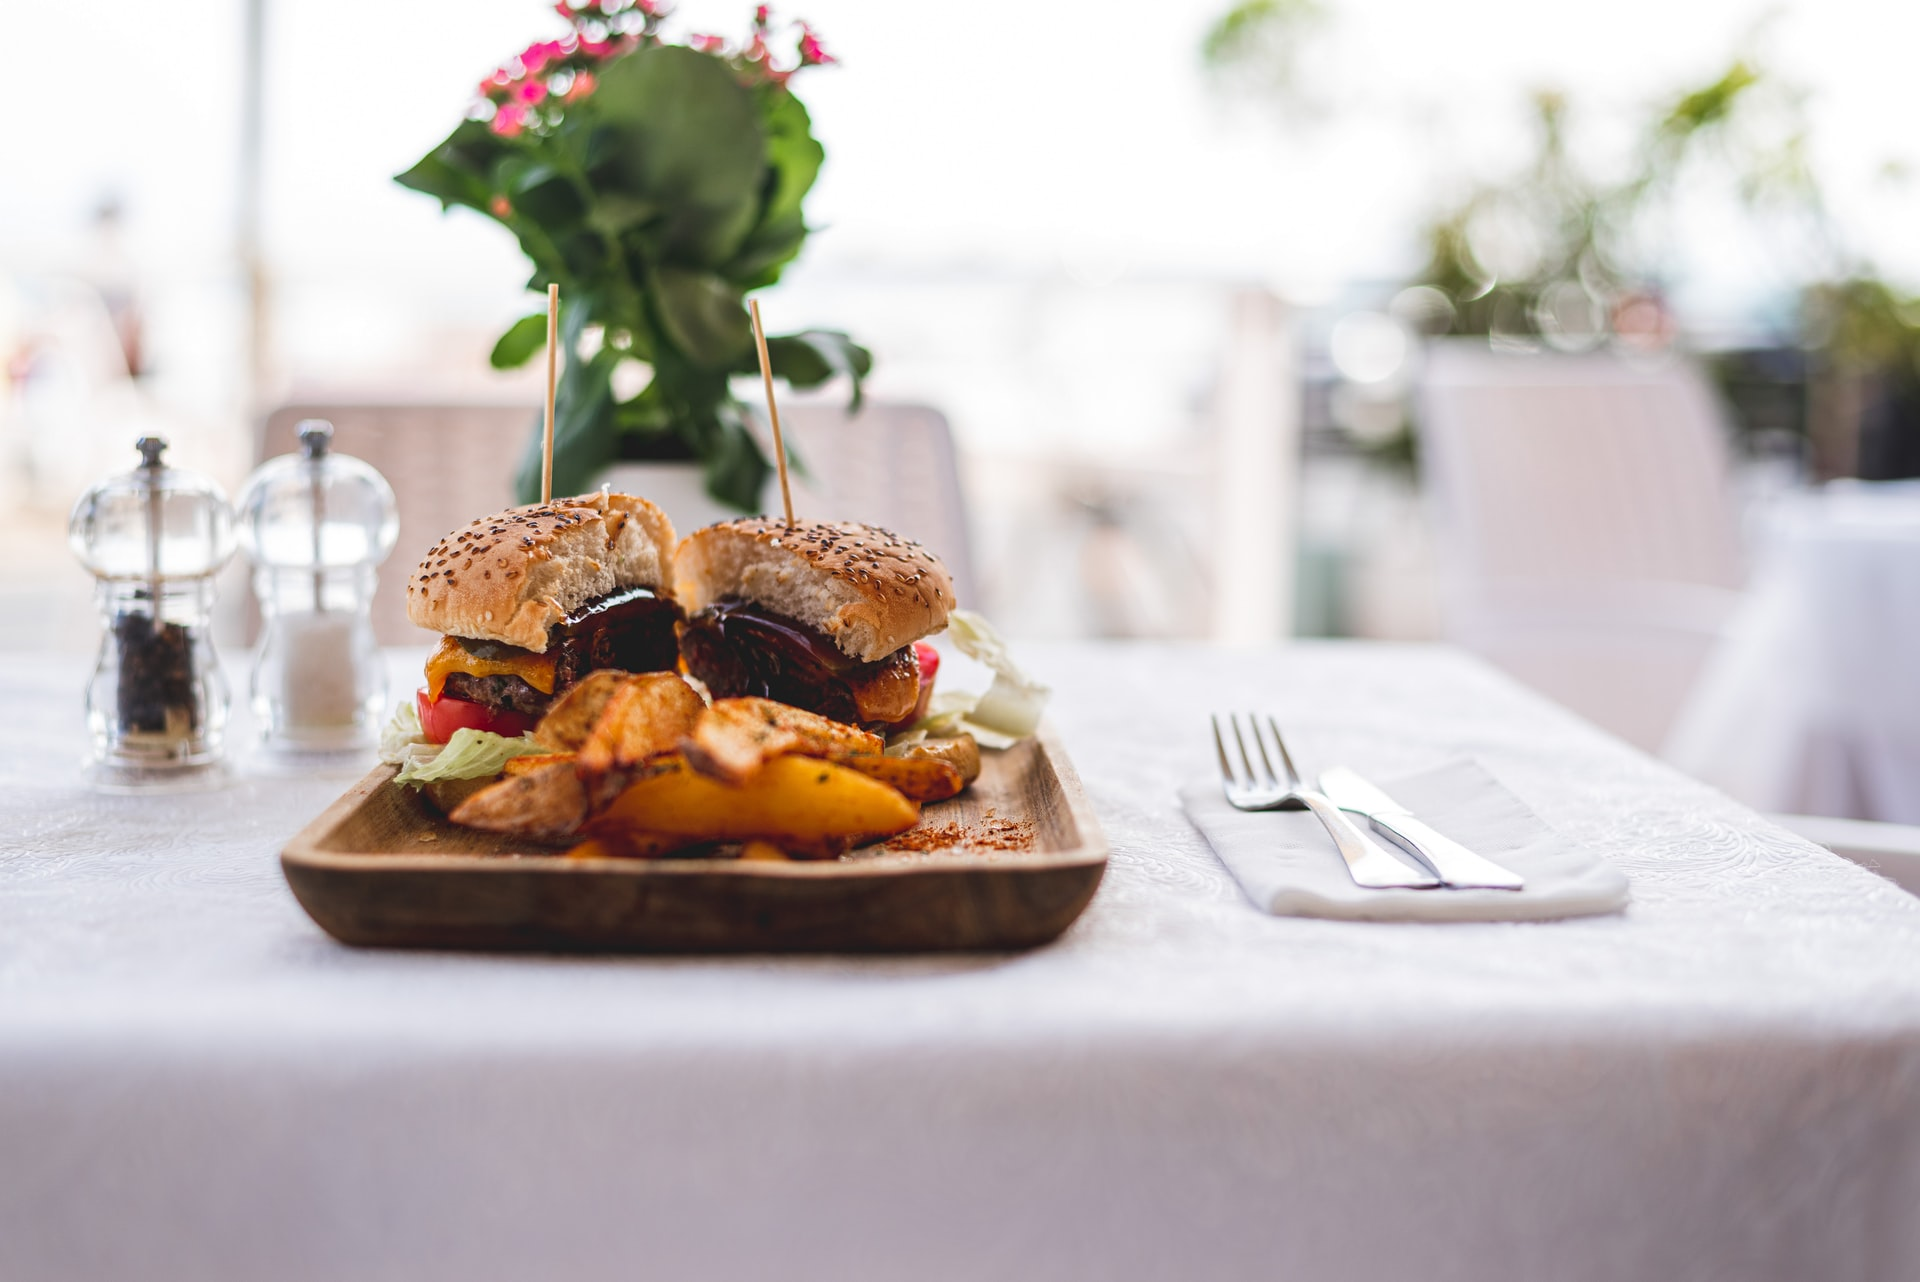 The London Restaurants Now Taking Bookings: North London